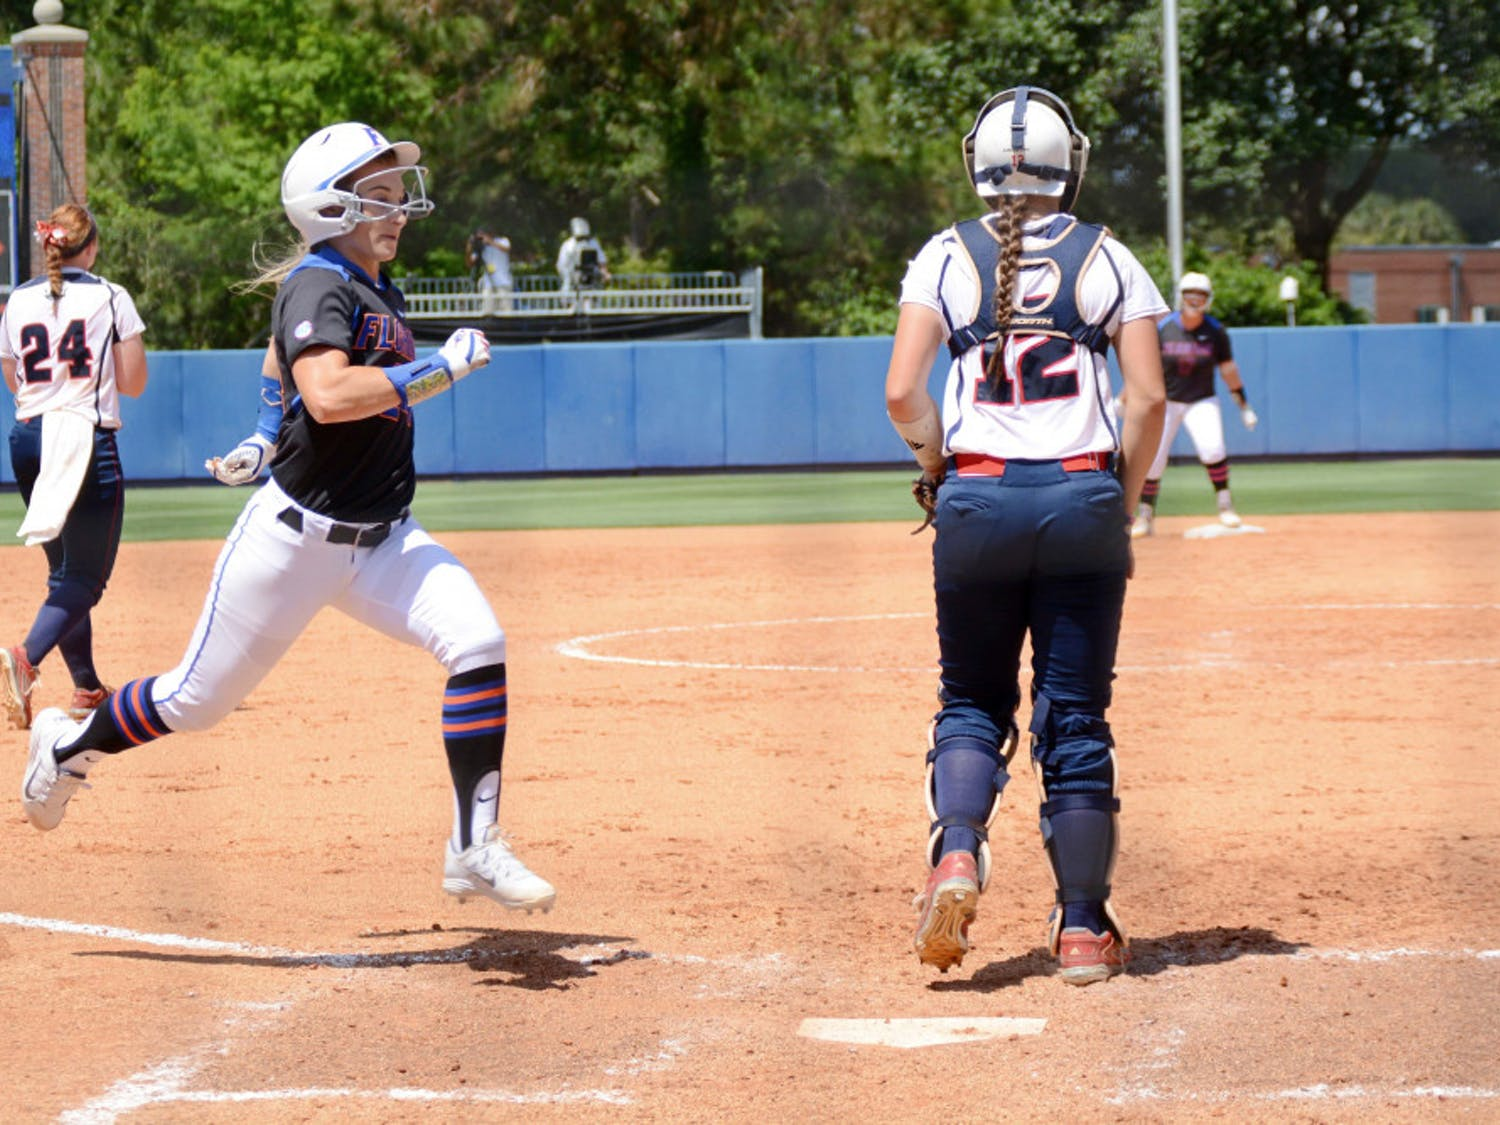 UF's Kirsti Merritt crosses home plate to score the lone run of the game in the eighth inning of Florida softball's 1-0 win against Florida Atlantic during the NCAA Regional finals on May 17, 2015, at Katie Seashole Pressly Stadium.